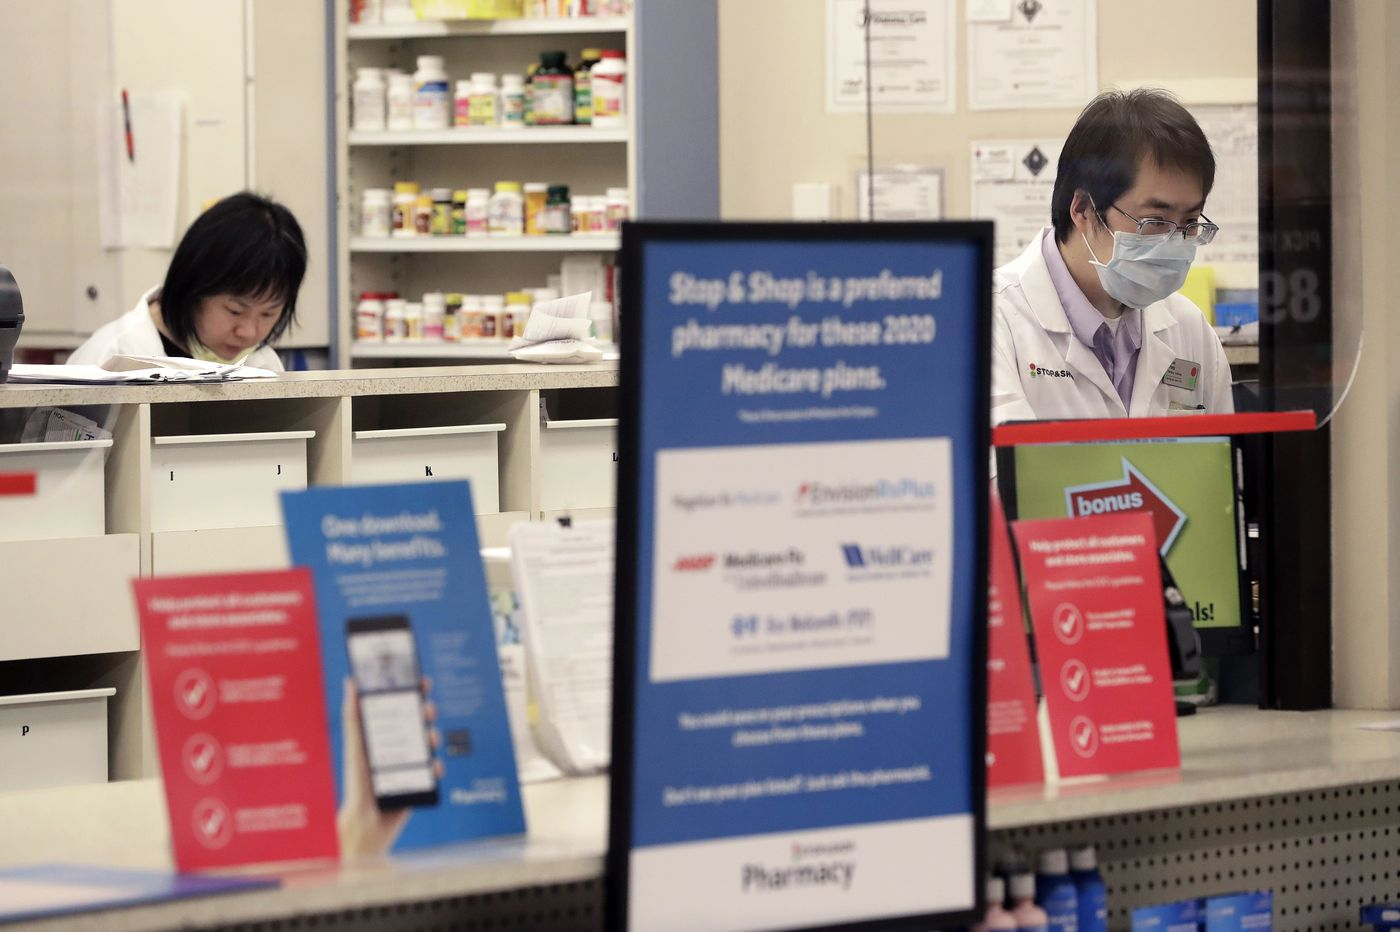 Medical mystery: What did the pharmacist know?